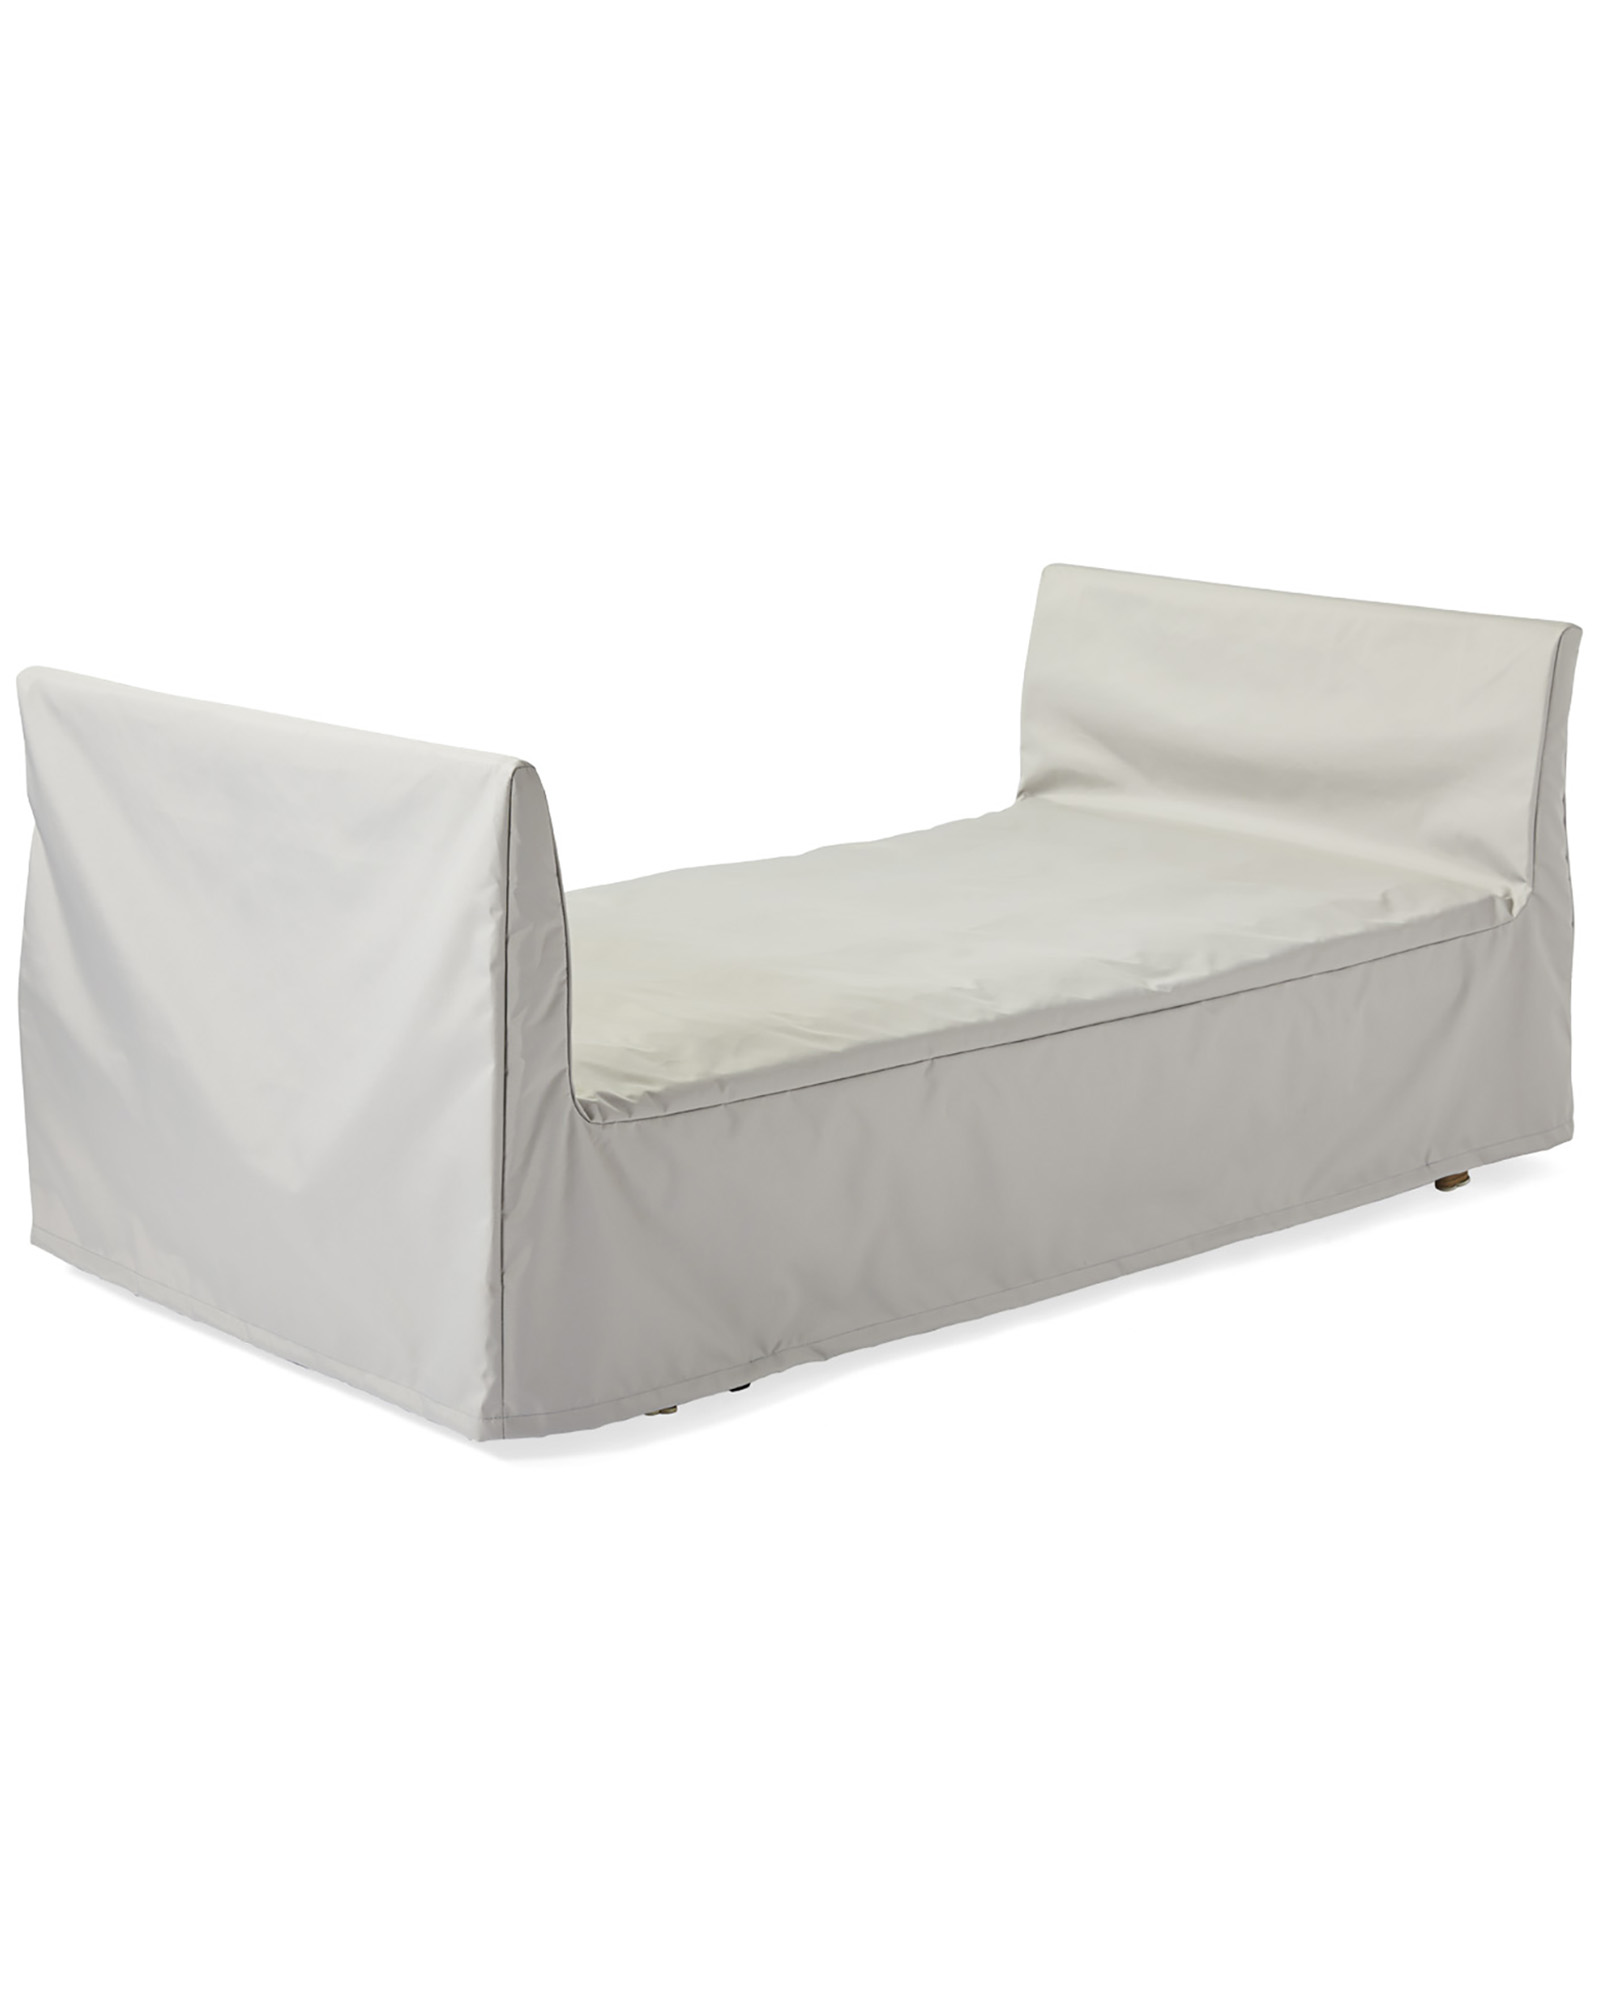 Protective Cover - Capistrano Daybed,